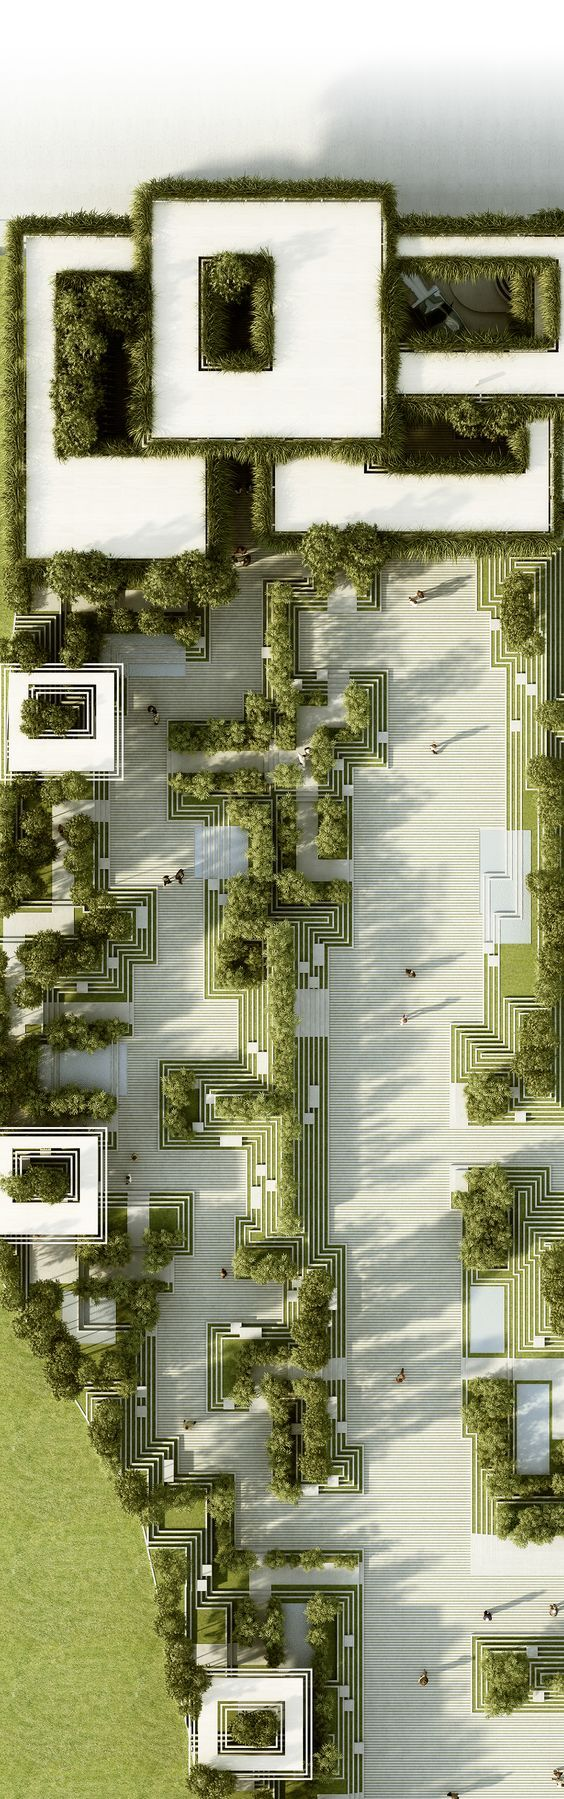 The project describes a landscape design and facade design for a residential development in Hyderabad / India and introduces a green and ecological design for the city. It combines traditional Indian elements like Indian Step-wells and Indian Mazes into t…